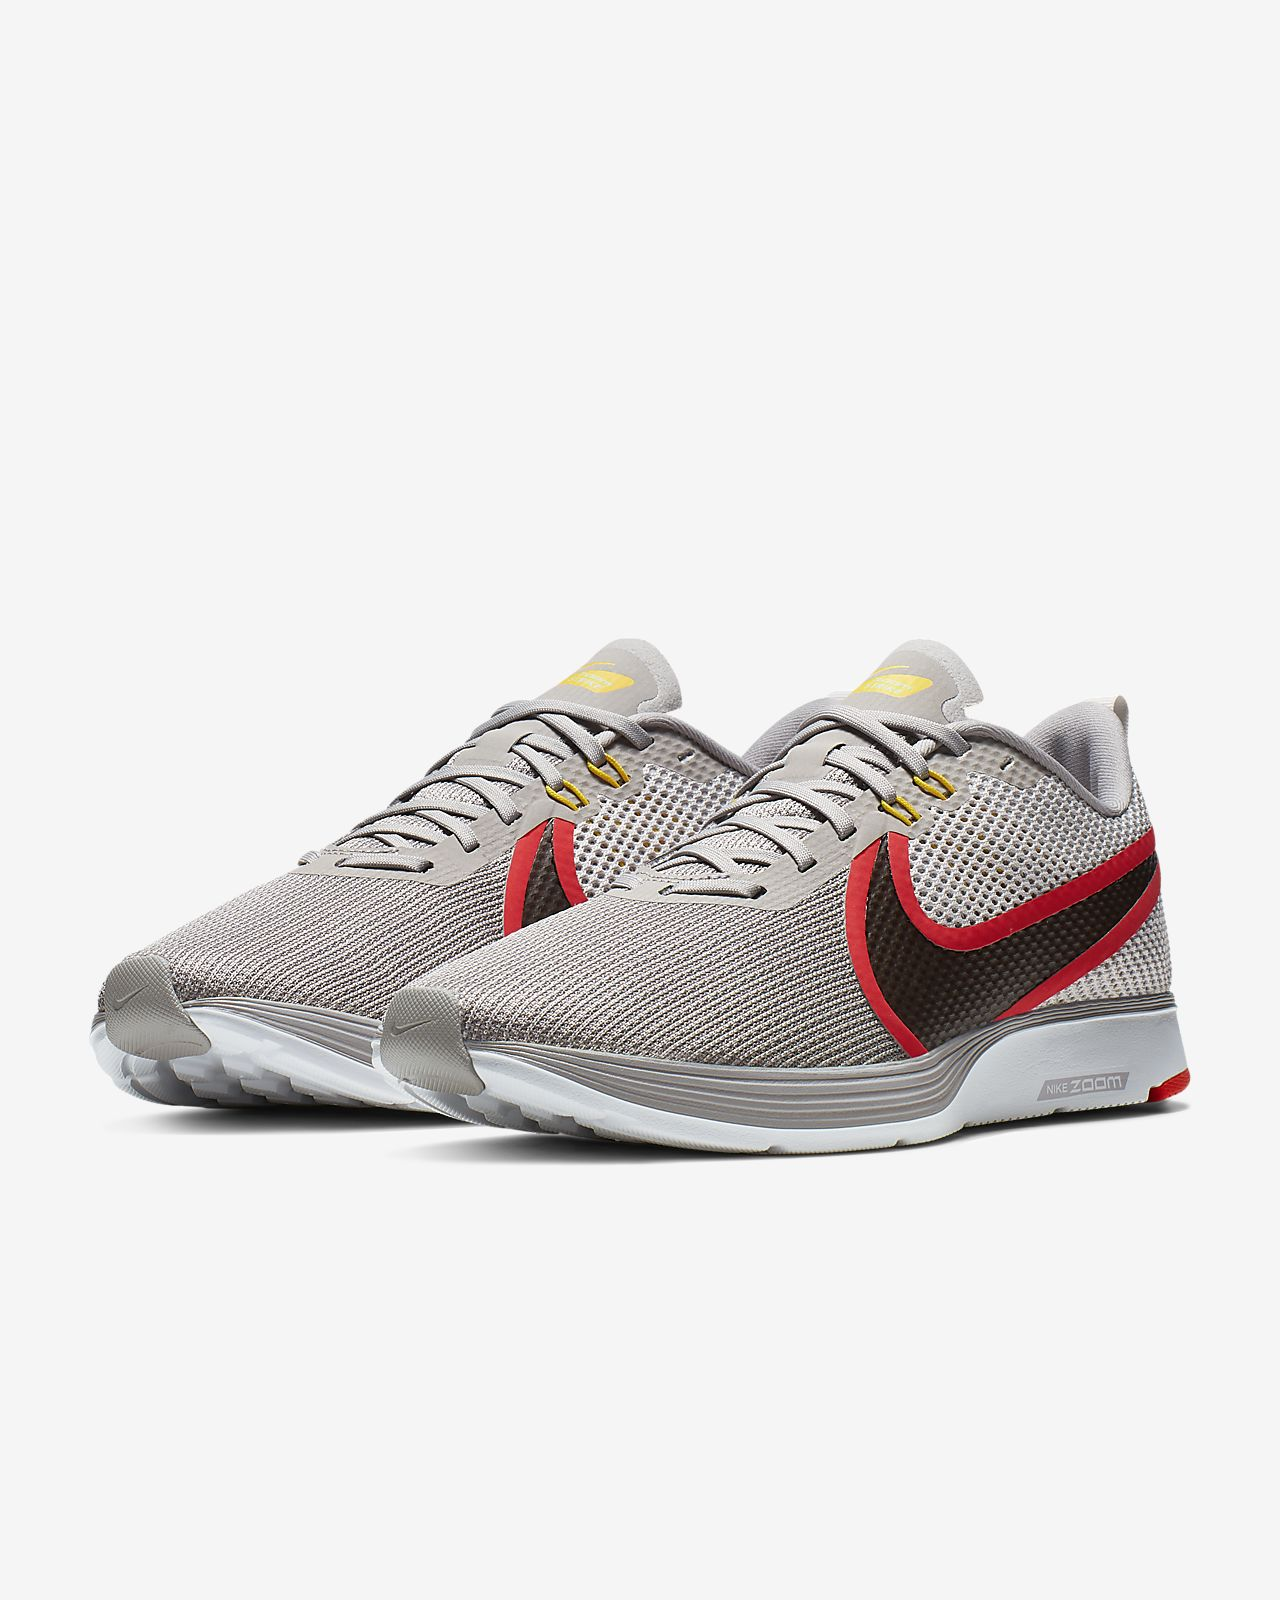 first rate 504a2 0f490 ... Chaussure de running Nike Zoom Strike 2 pour Homme